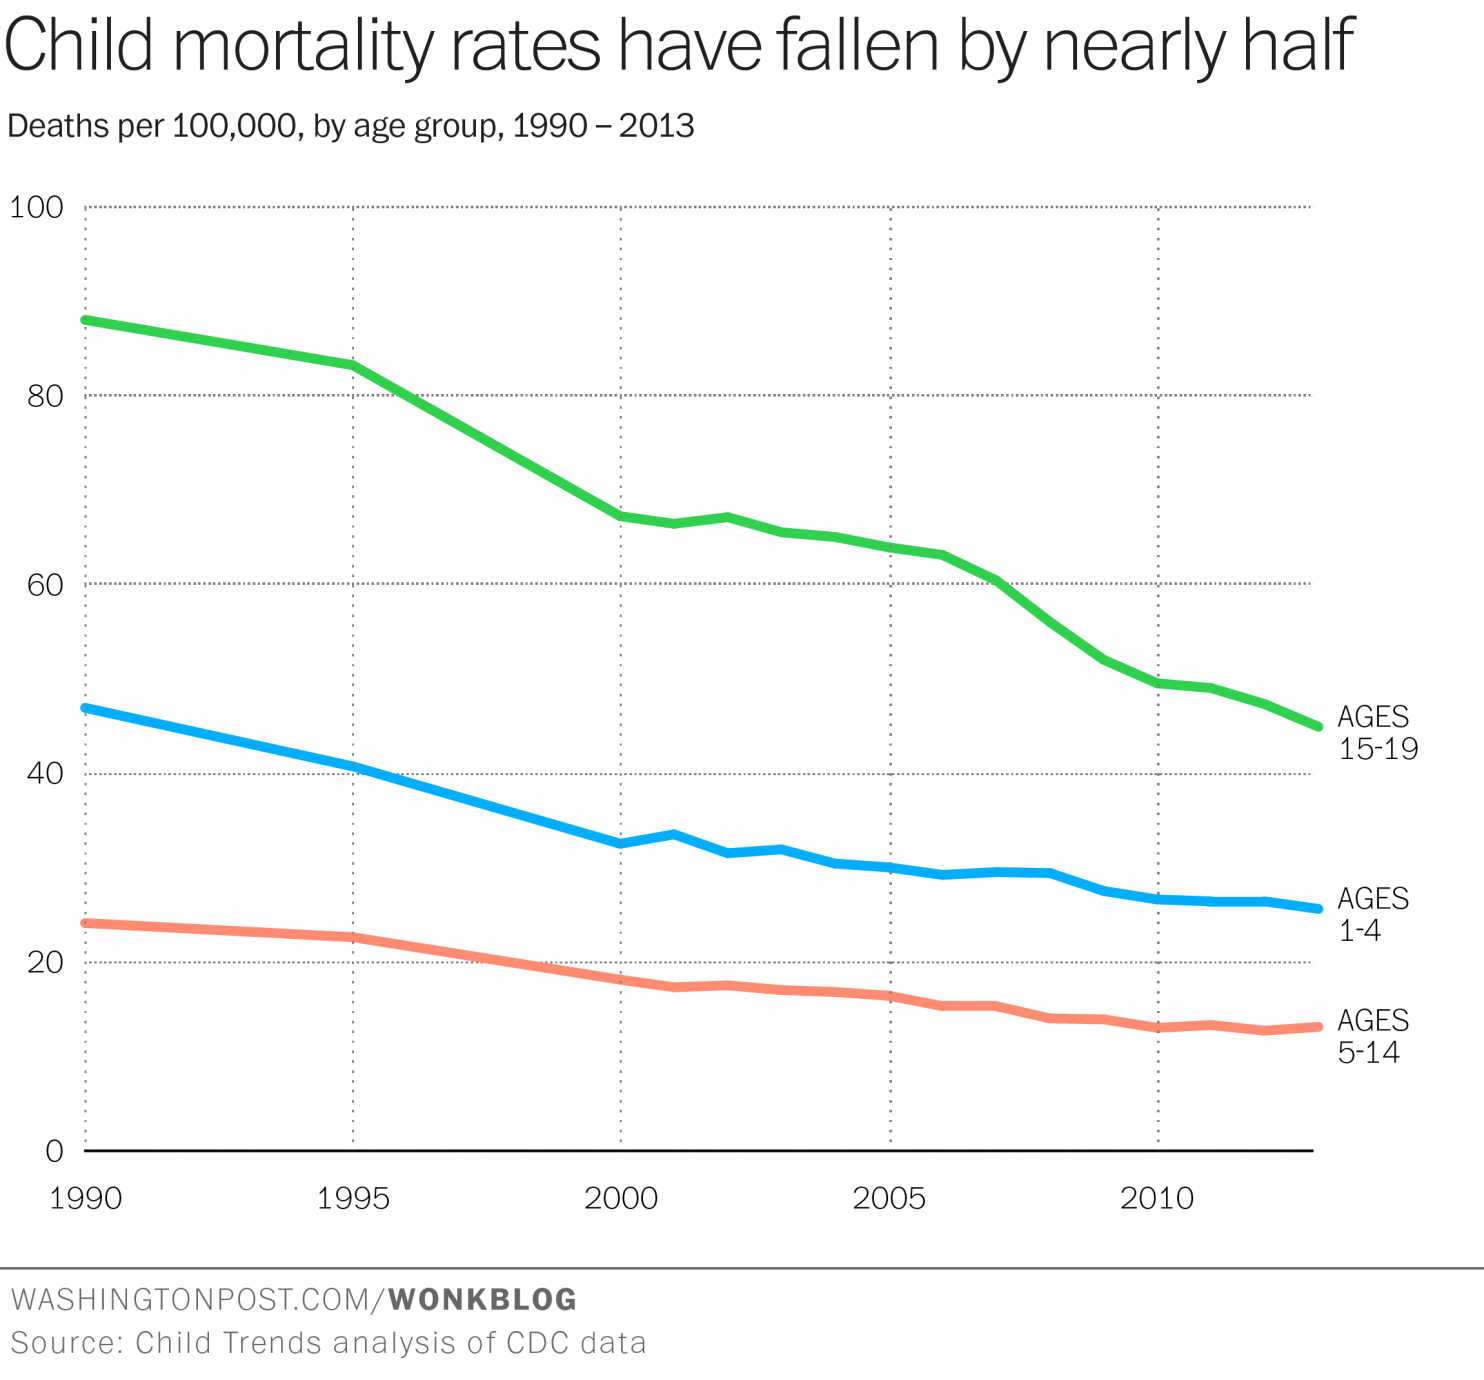 http://www.washingtonpost.com/blogs/wonkblog/wp/2015/04/14/theres-never-been-a-safer-time-to-be-a-kid-in-america/